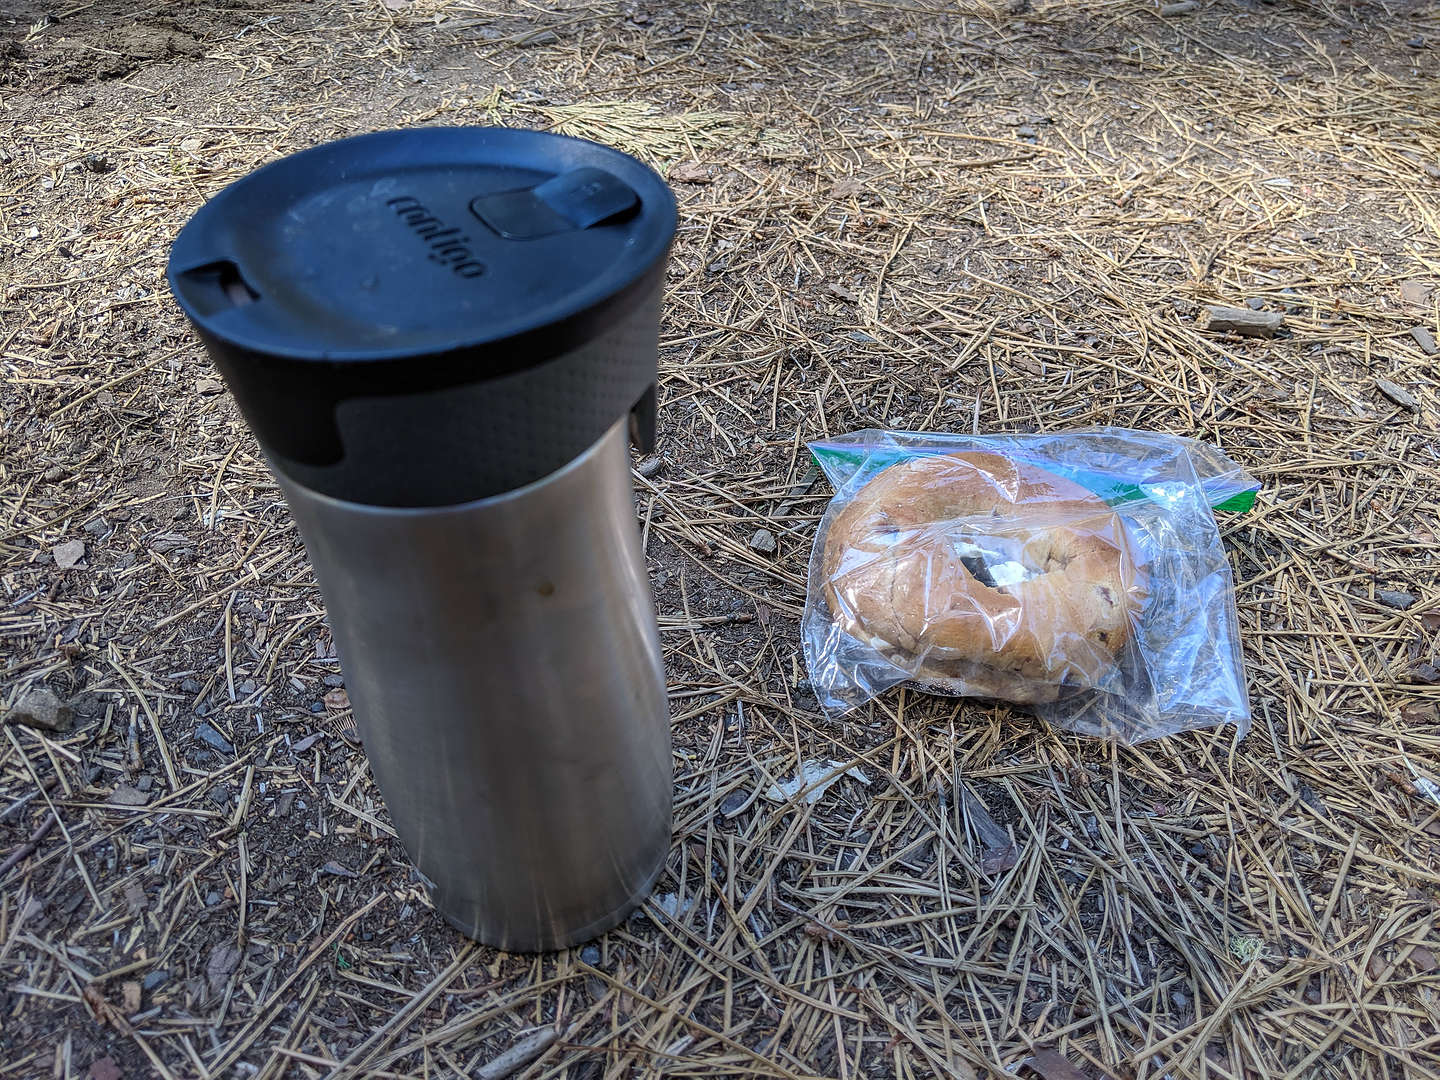 The bagel and coffee I tried to bring Herb before eating it myself